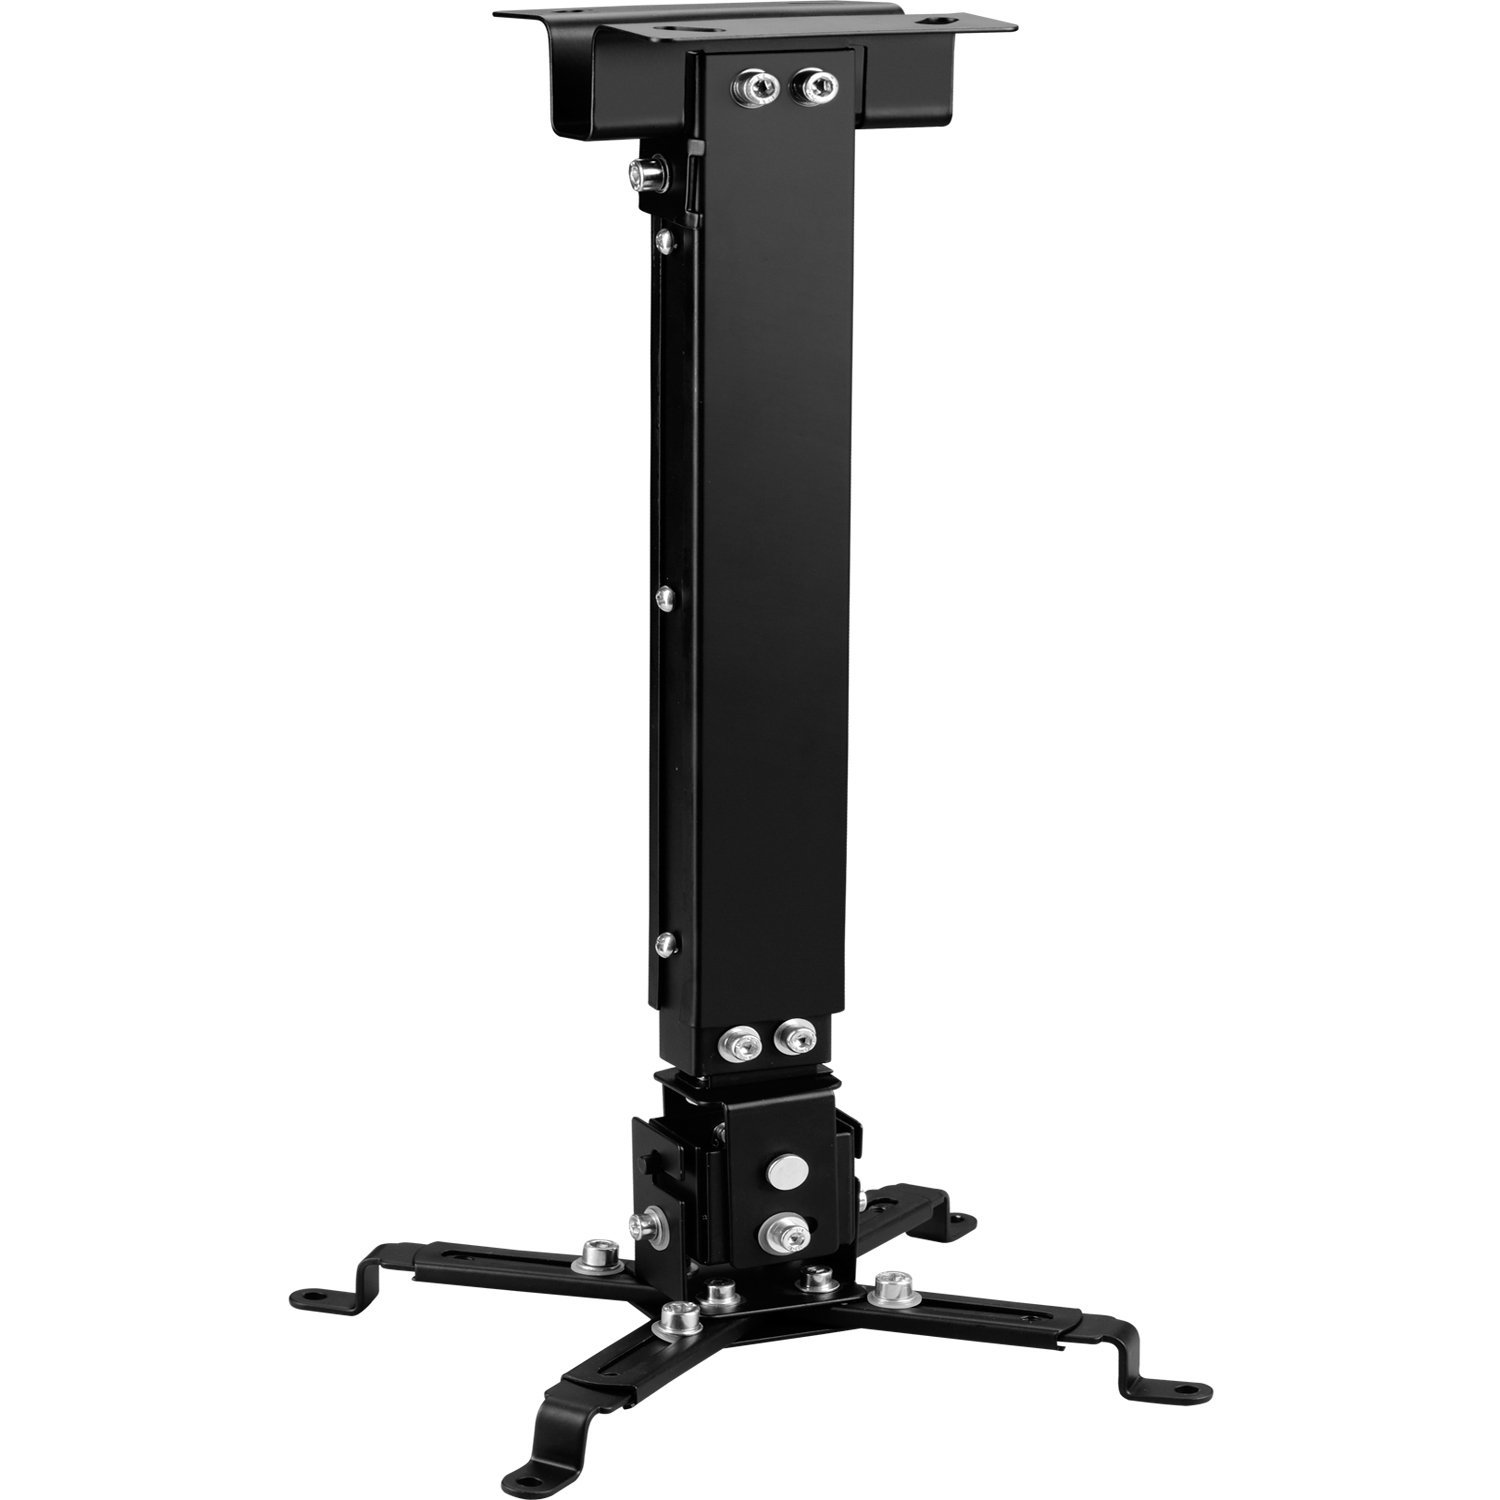 WALI Universal Multiple Adjustment Projector Flat Ceiling Mount Bracket with 25.6 inch Extension Pole, Hold up to 44 lbs. (PM-001-BLK), Black